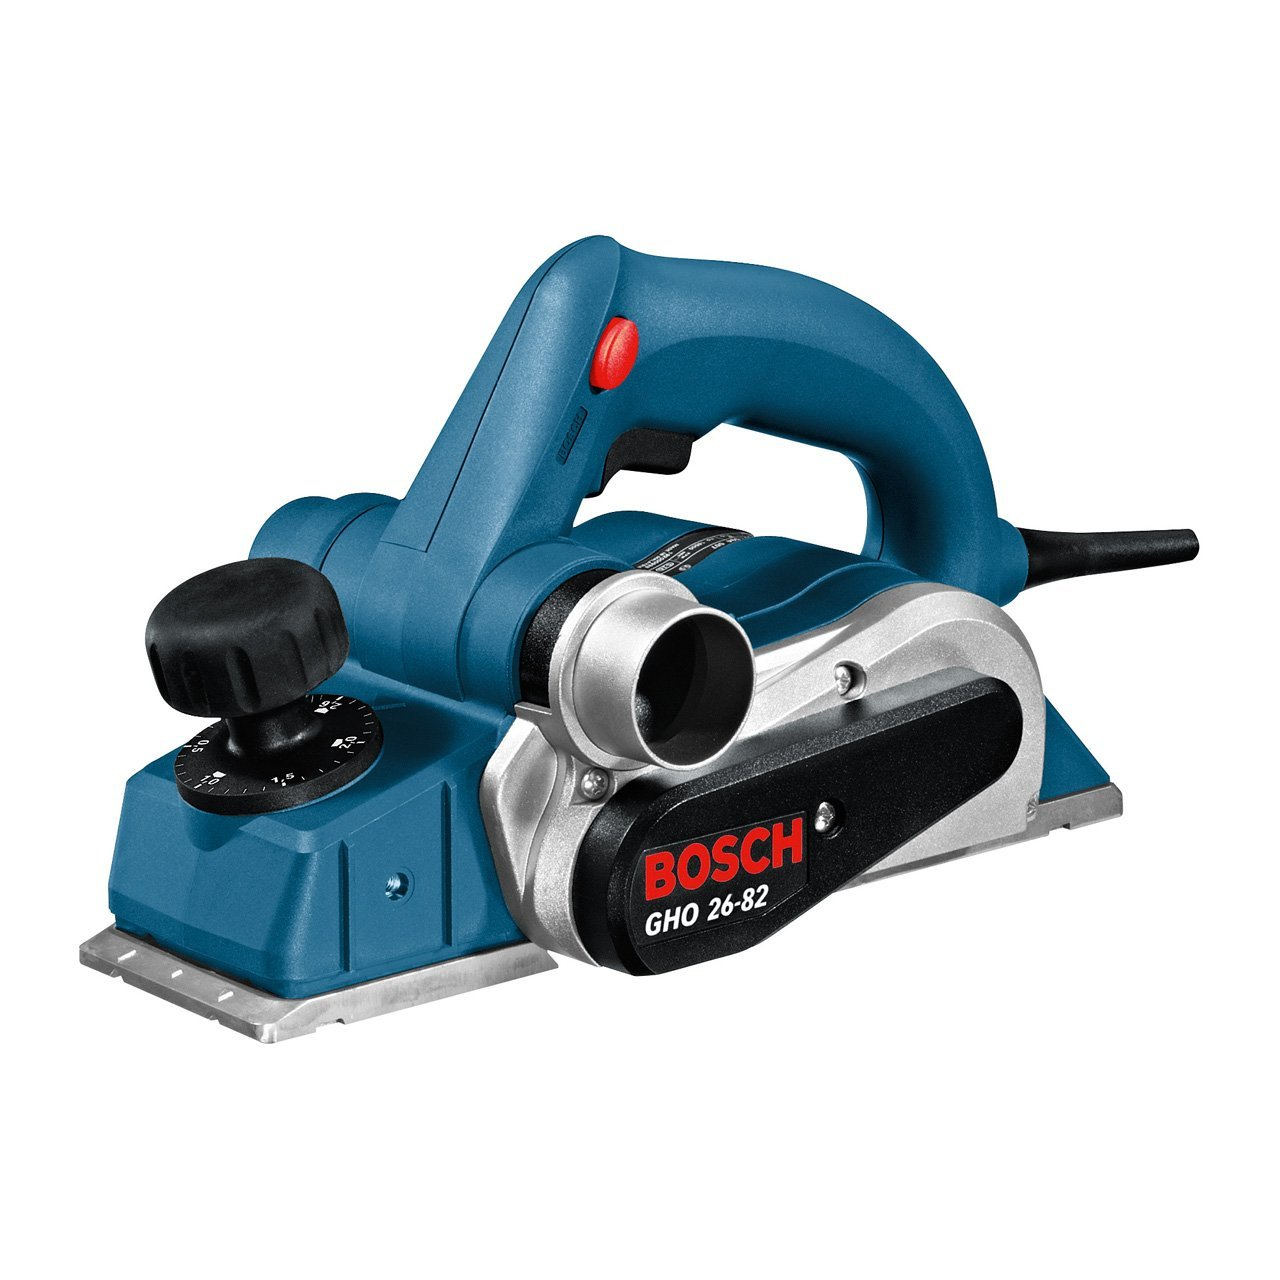 Bosch GHO26-82 Professional 710w Planer